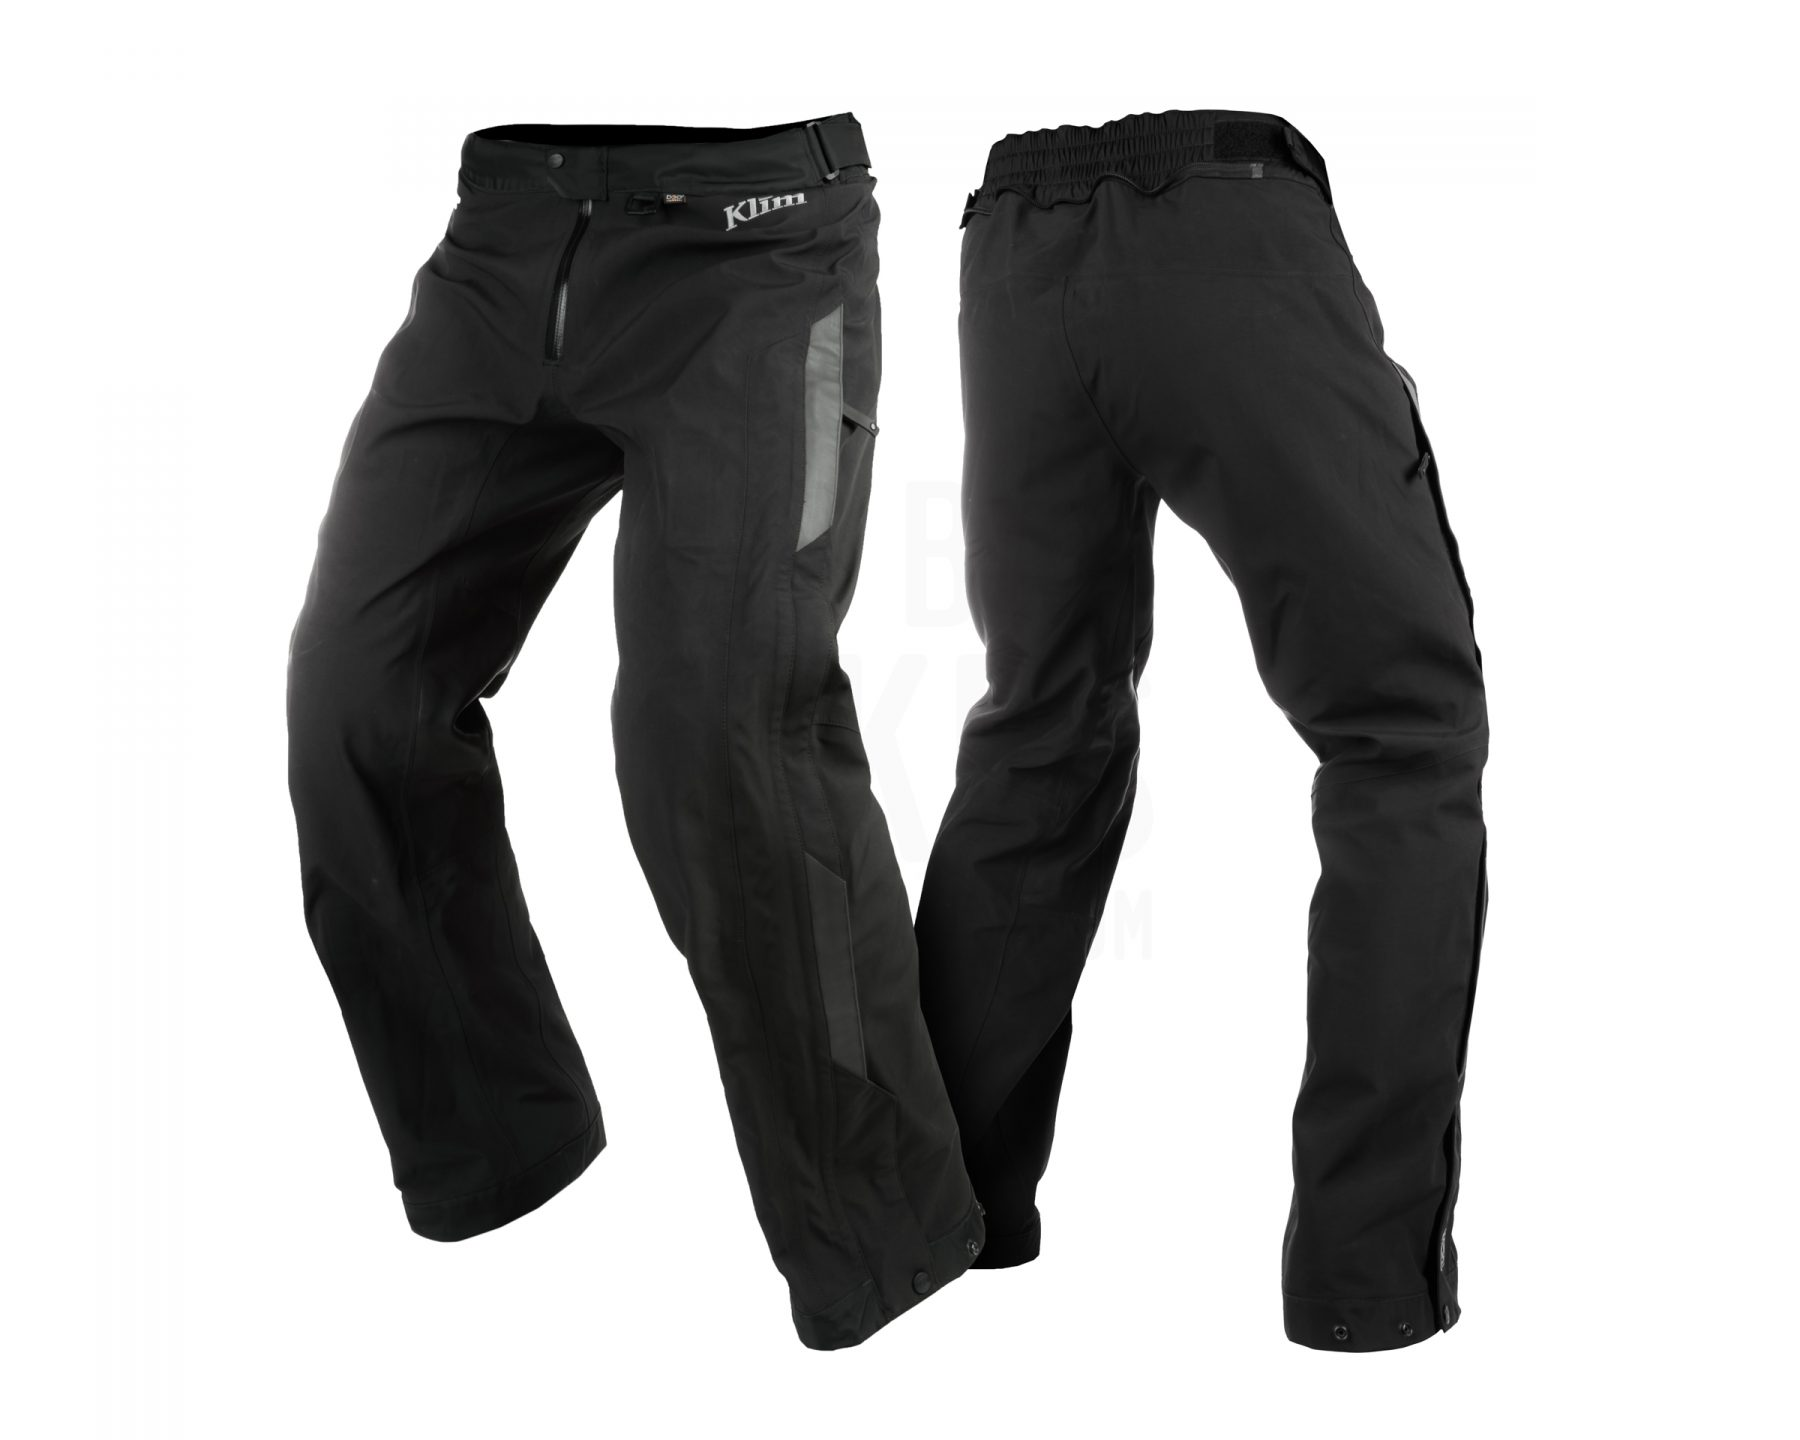 S Torrent Over Pant 3081-000-000